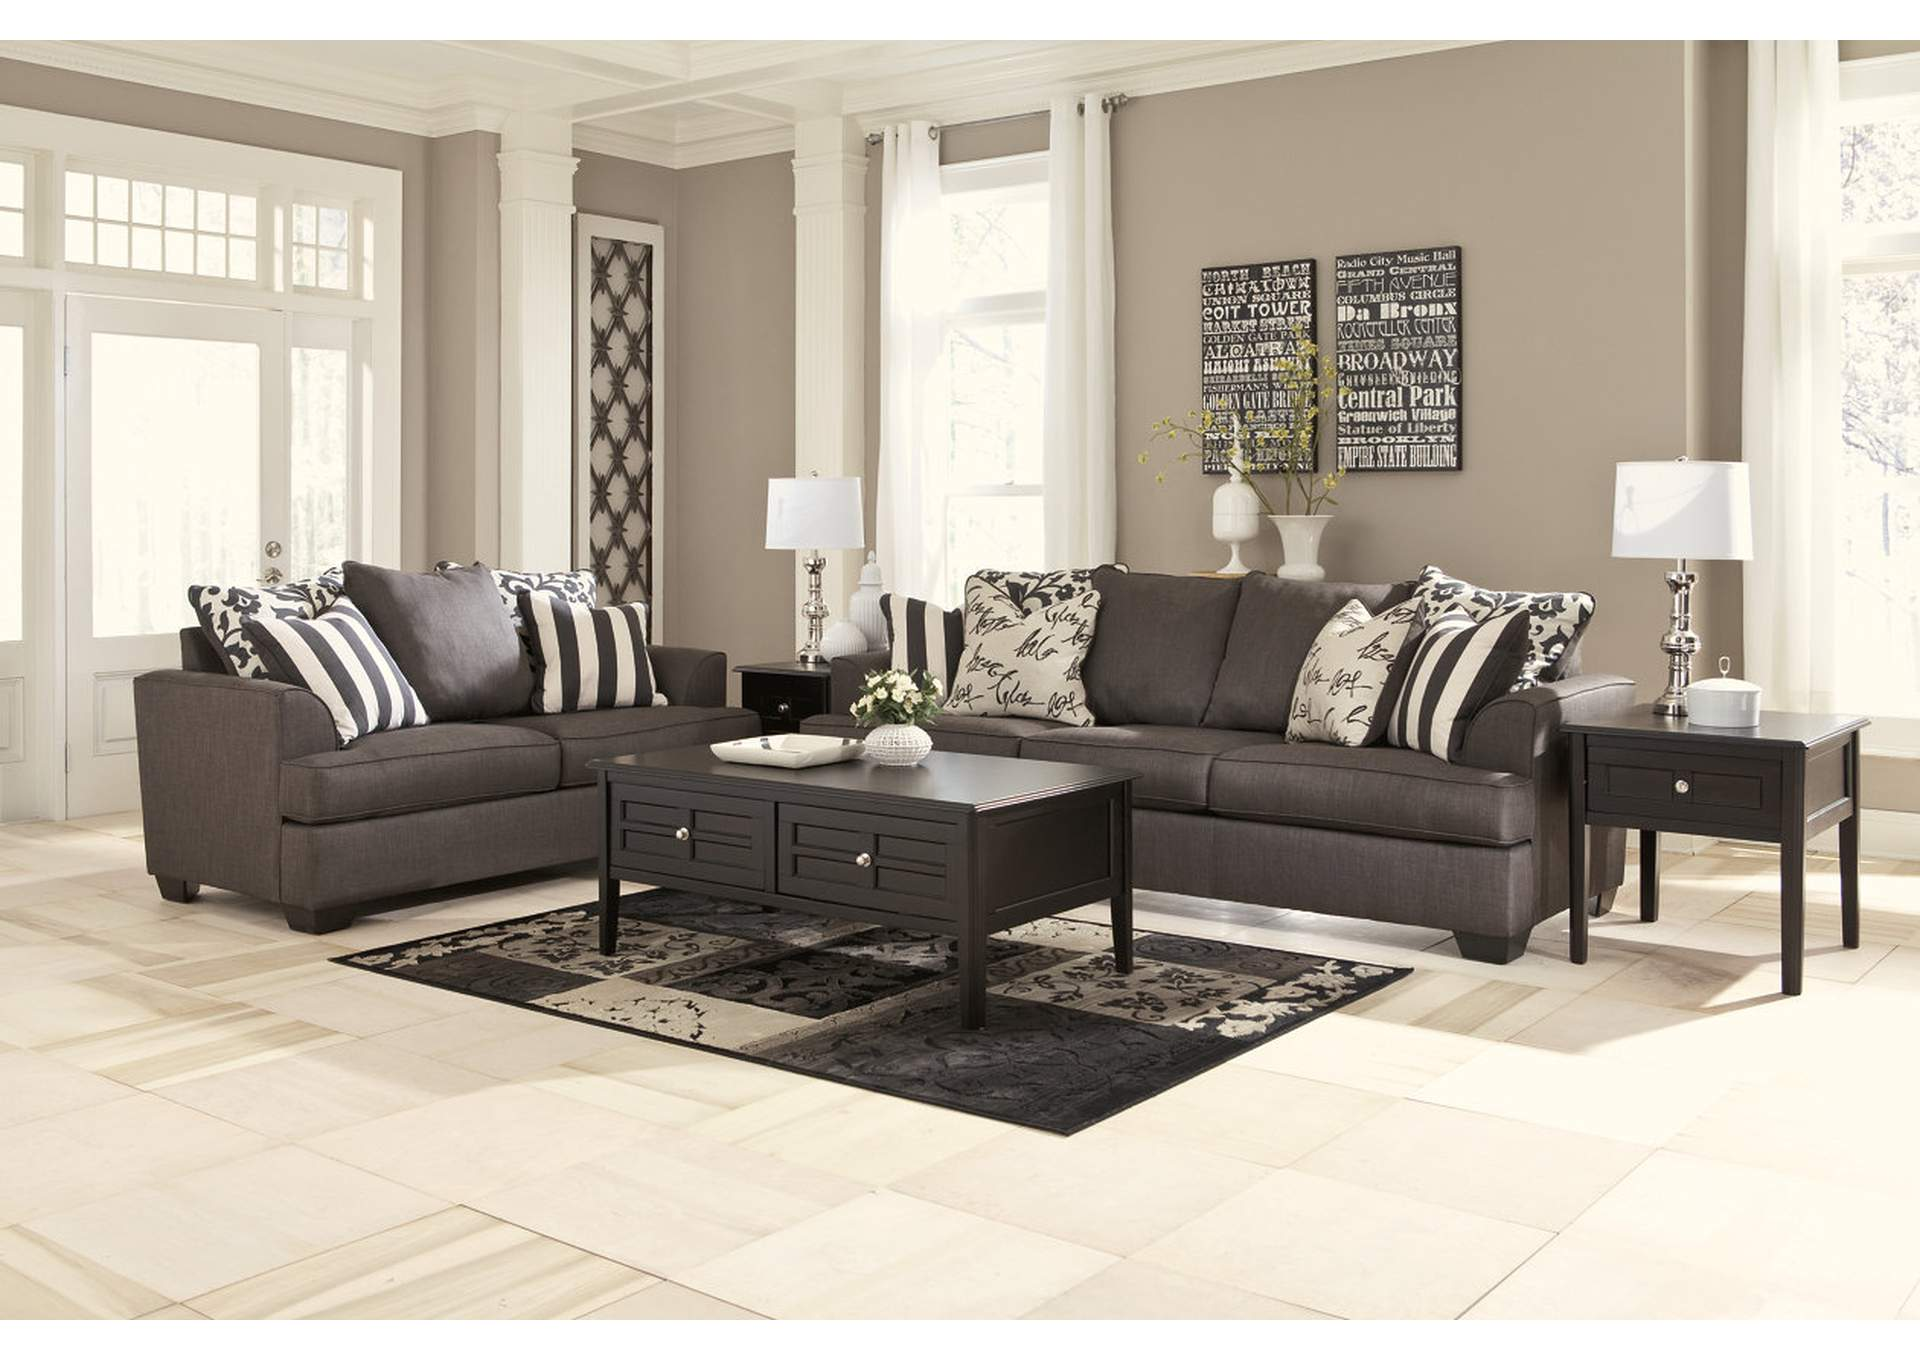 Levon Charcoal Sofa & Loveseat,ABF Signature Design by Ashley